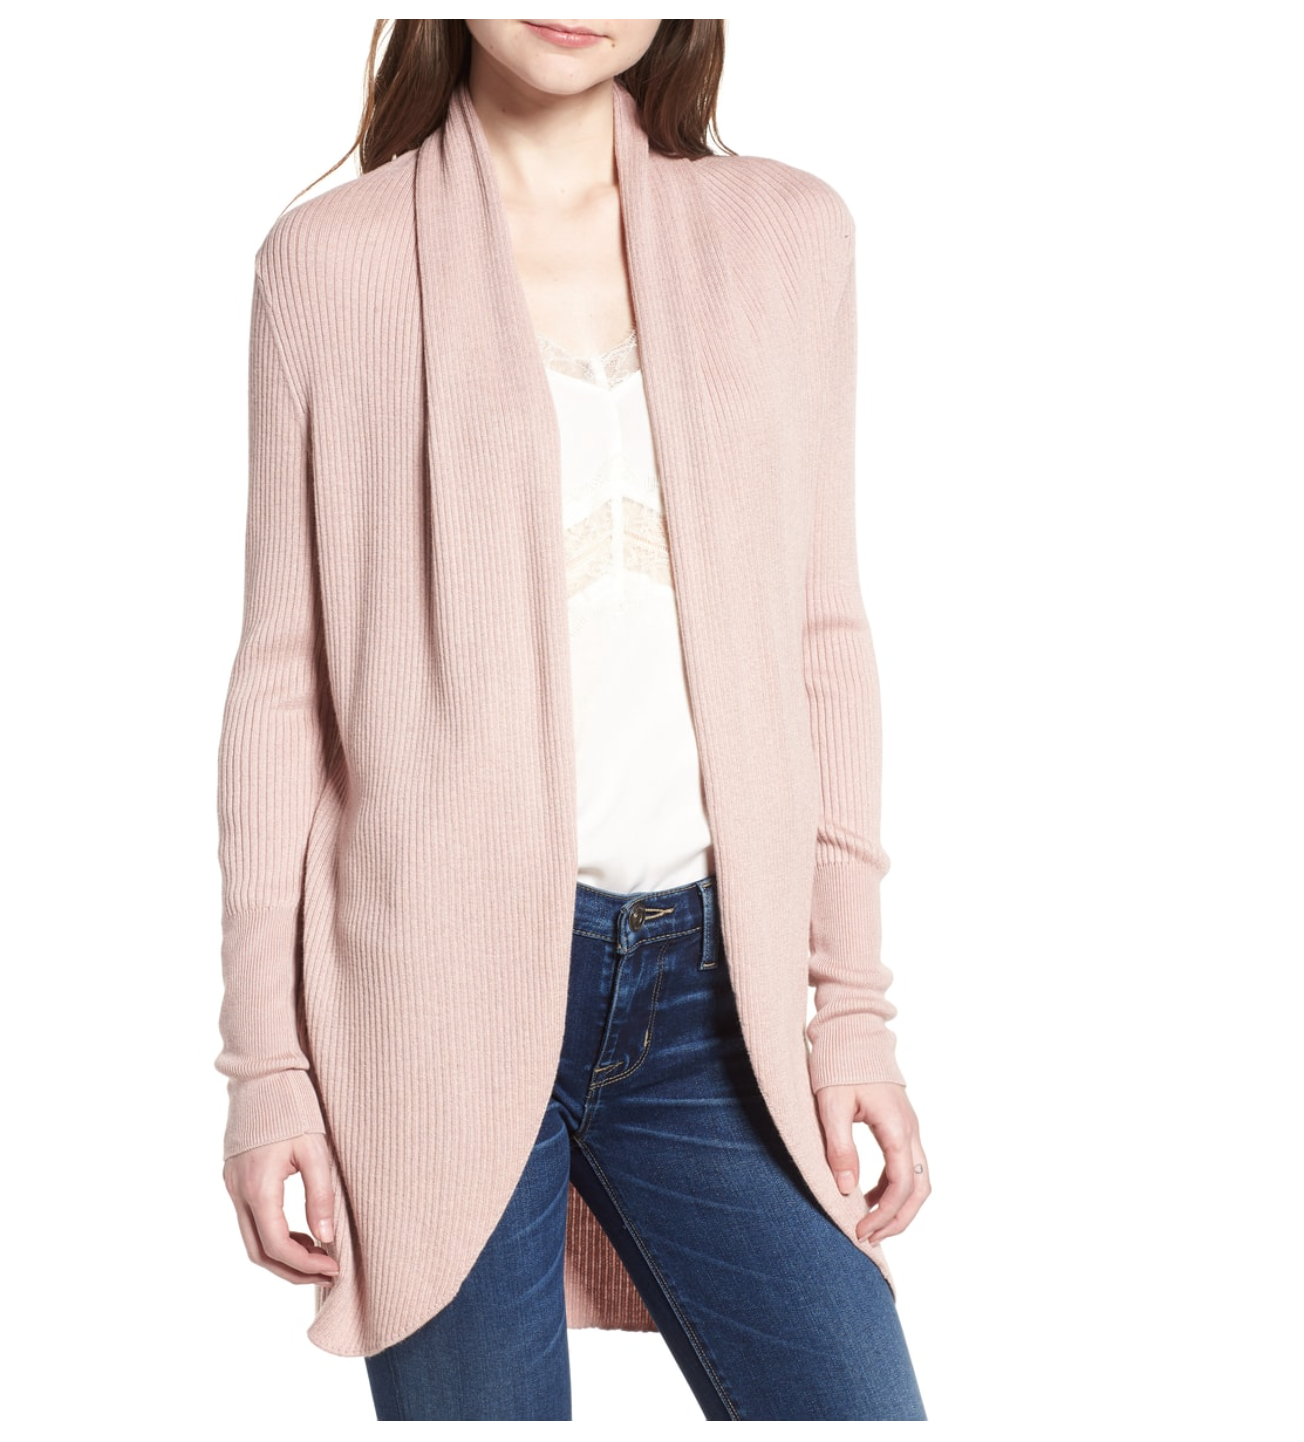 comfortable long cardigan | pink blush | cute top for women